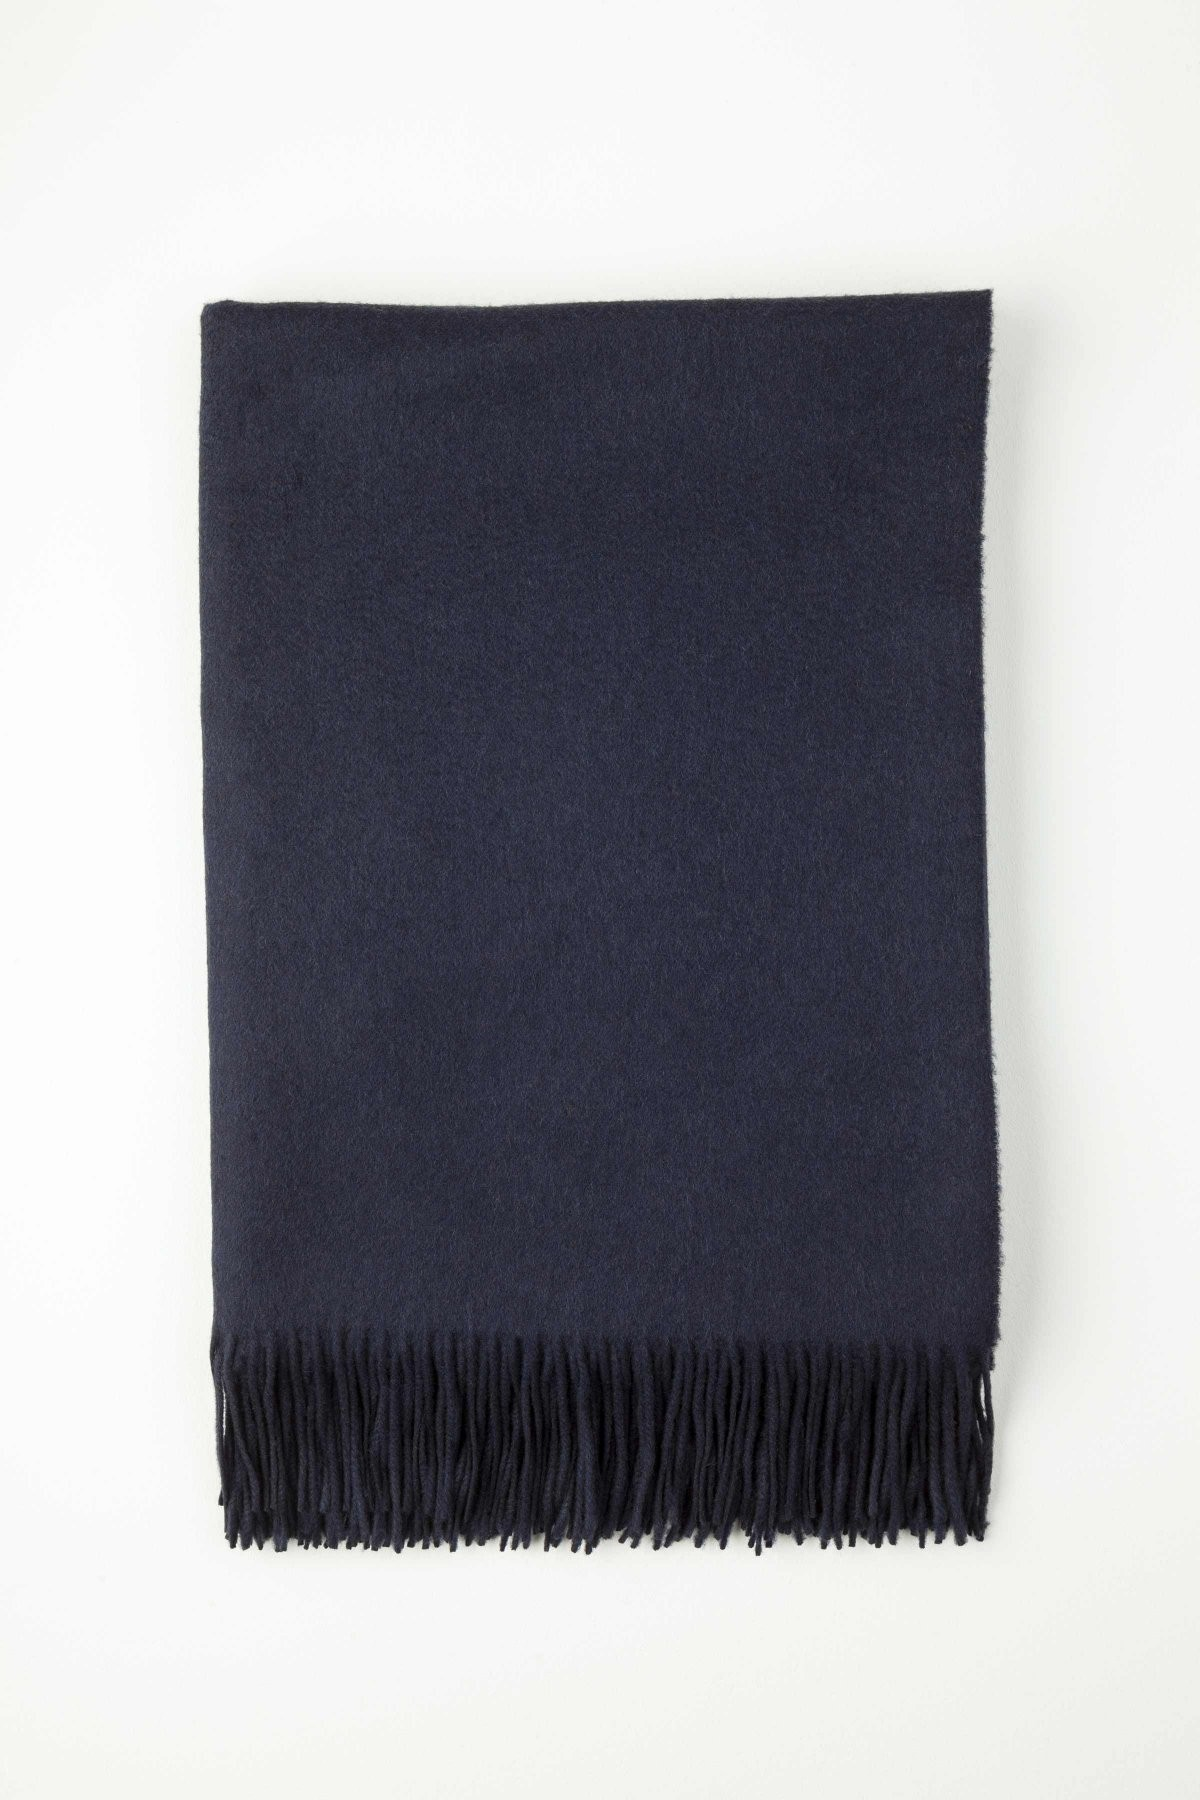 Johnston's of Elgin Plain Cashmere Throw - Navy